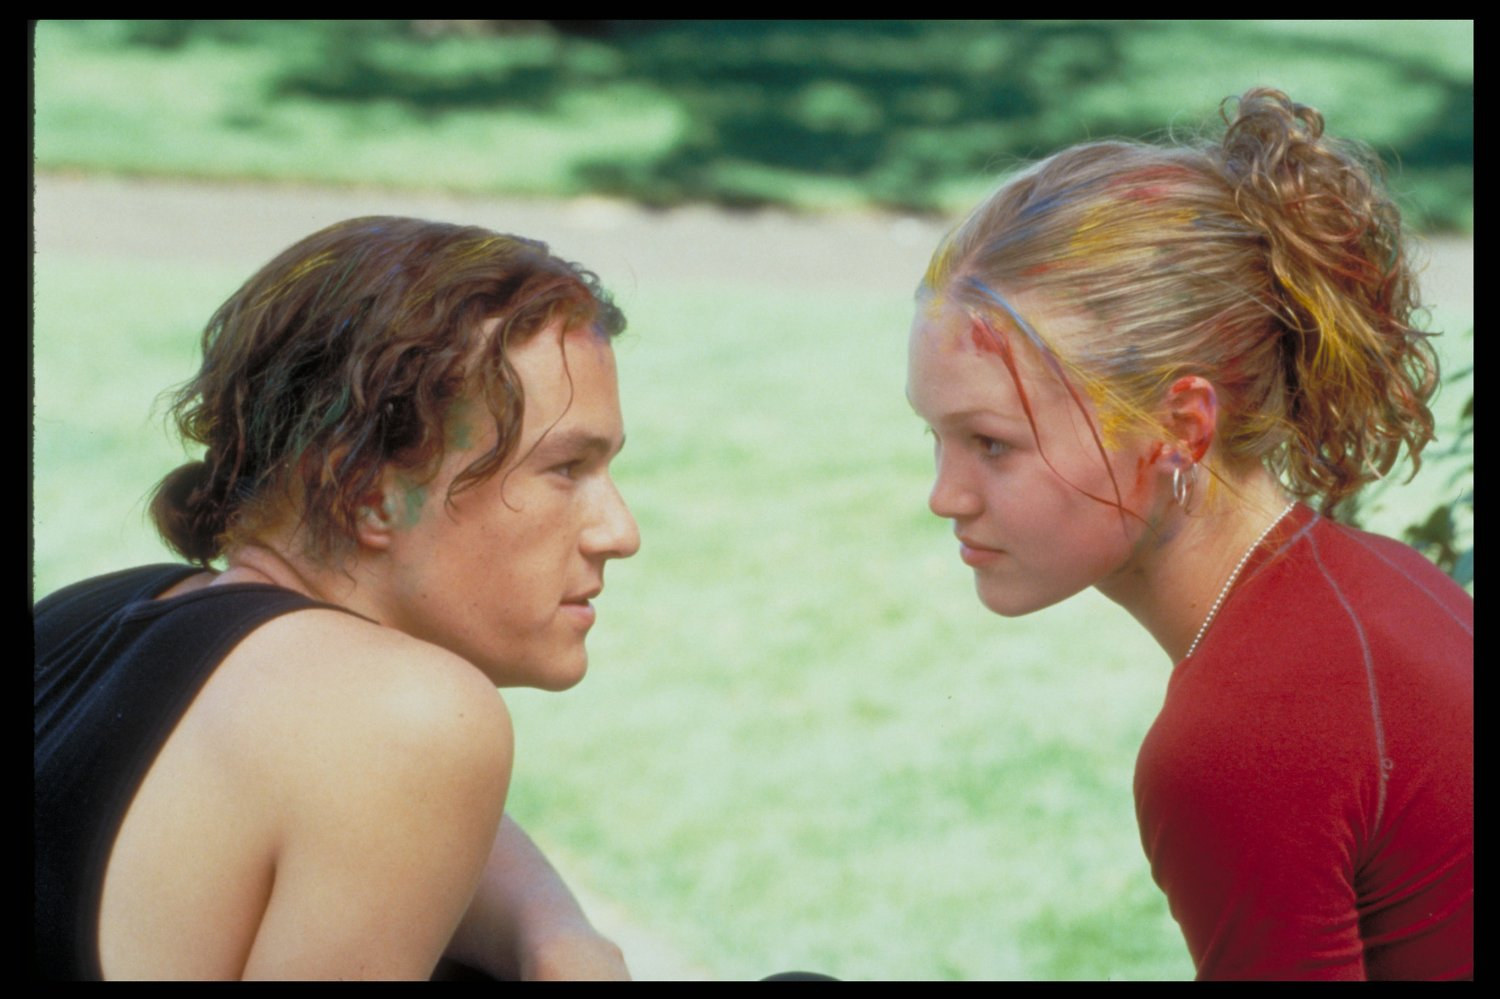 Genre Grandeur 10 Things I Hate About You 1999: 10 Things I Hate About You 1999 Watch In HD For Free